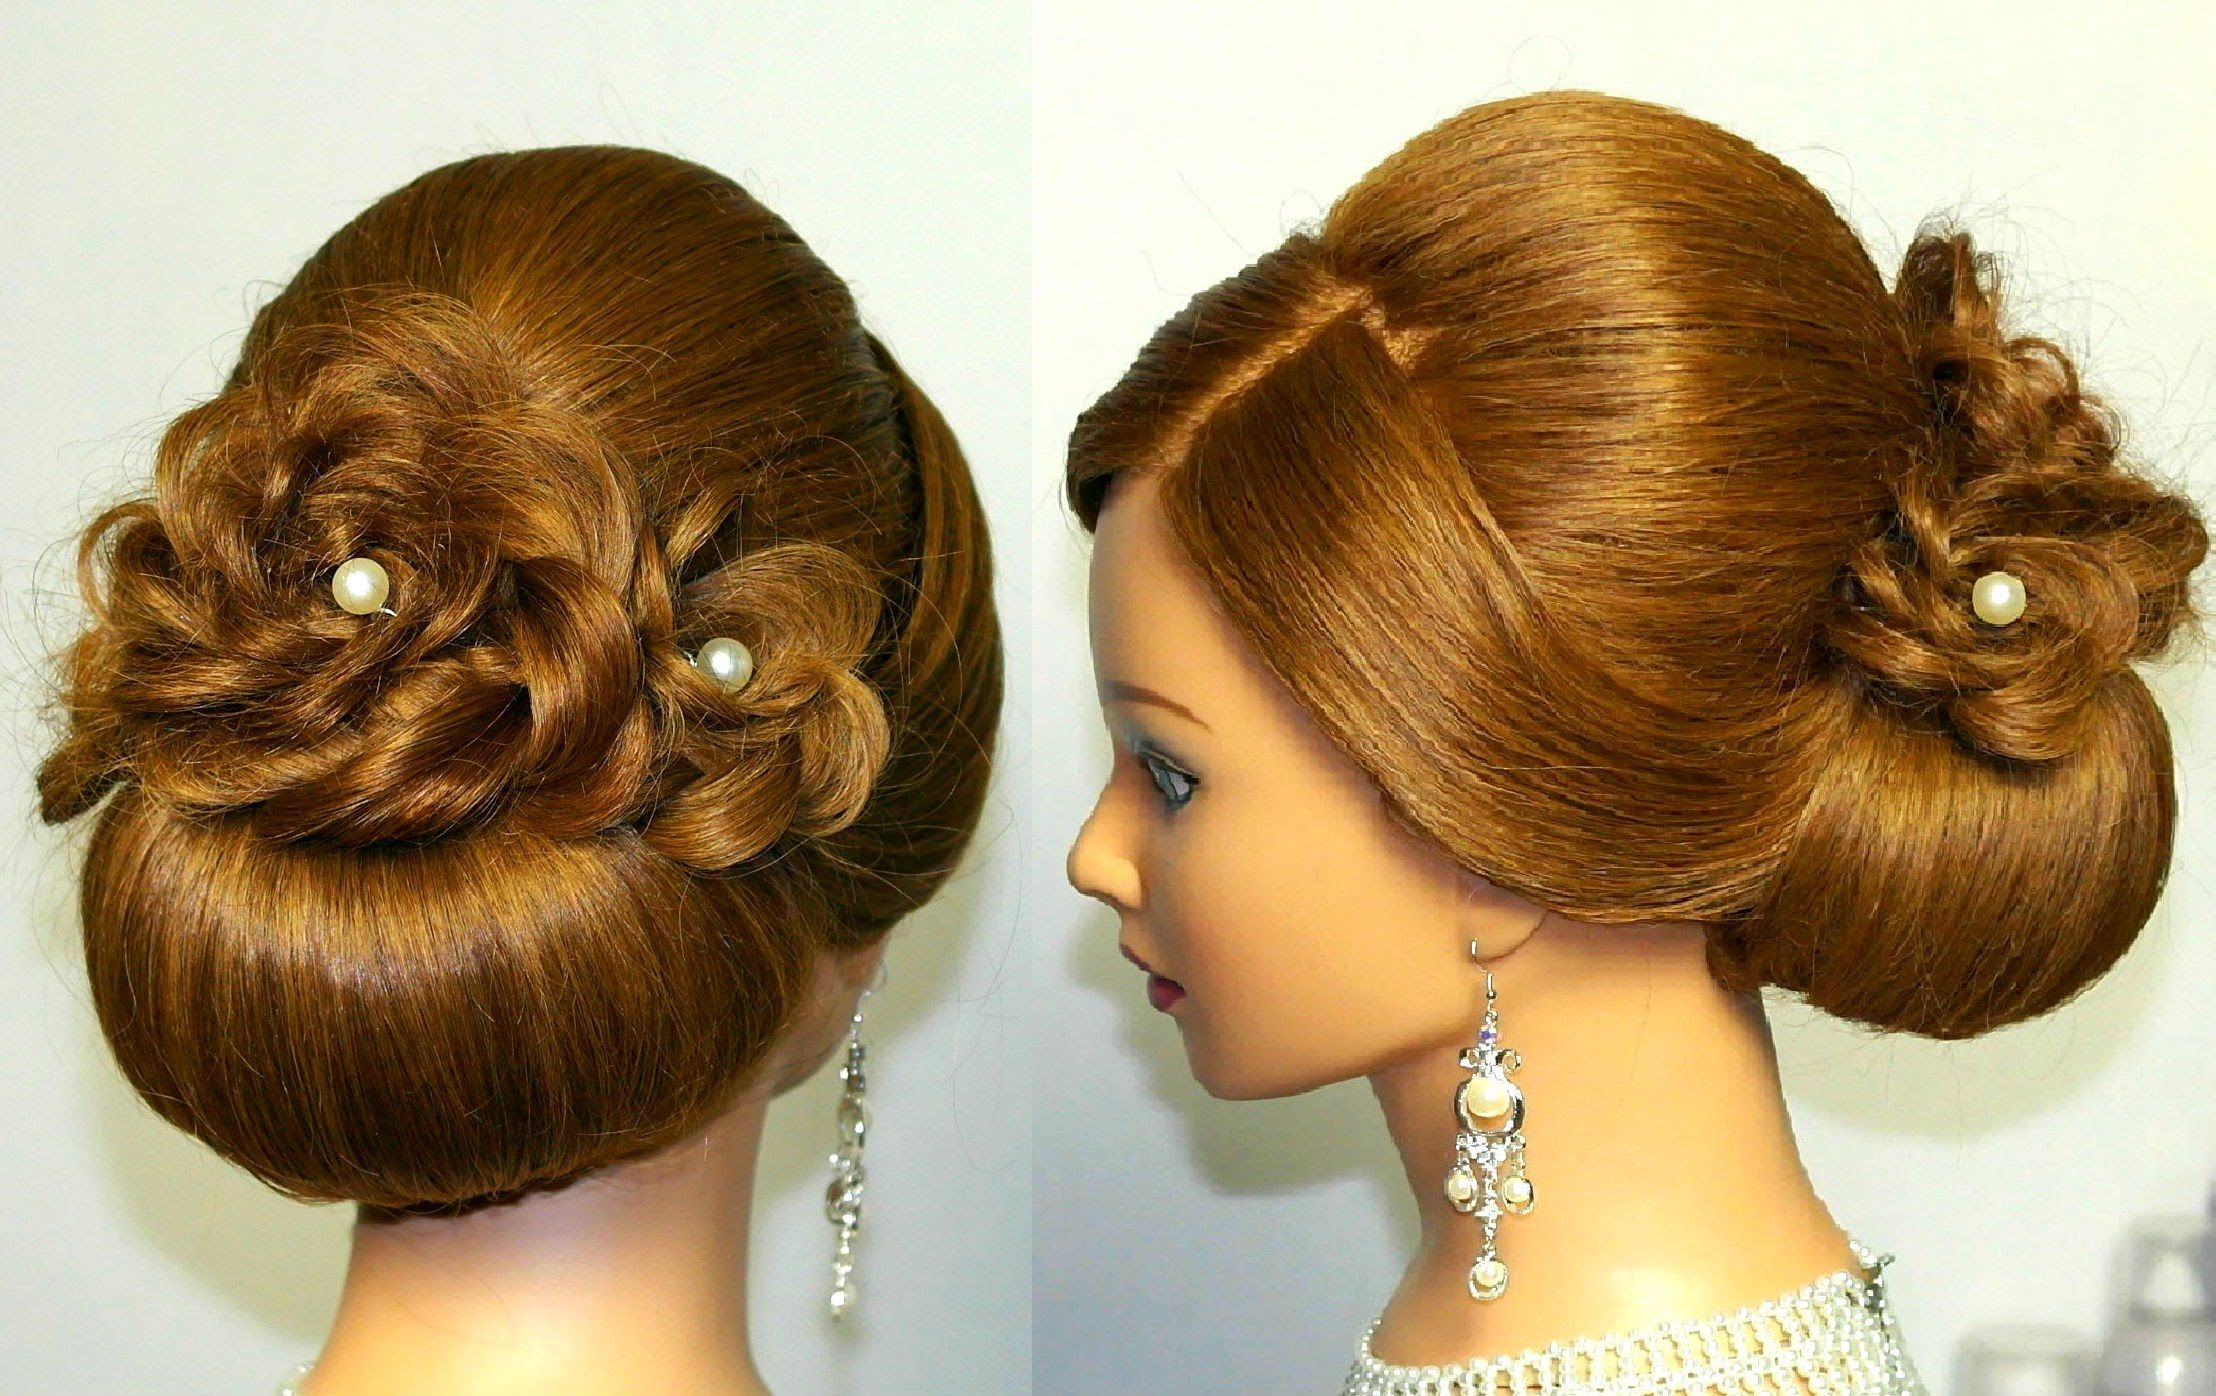 Wedding Prom Hairstyle For Long Hair Updo Tutorial With Braided Flowers Weddinghairflowers Long Hair Updo Braided Hairstyles For Wedding Hair Updos Tutorials